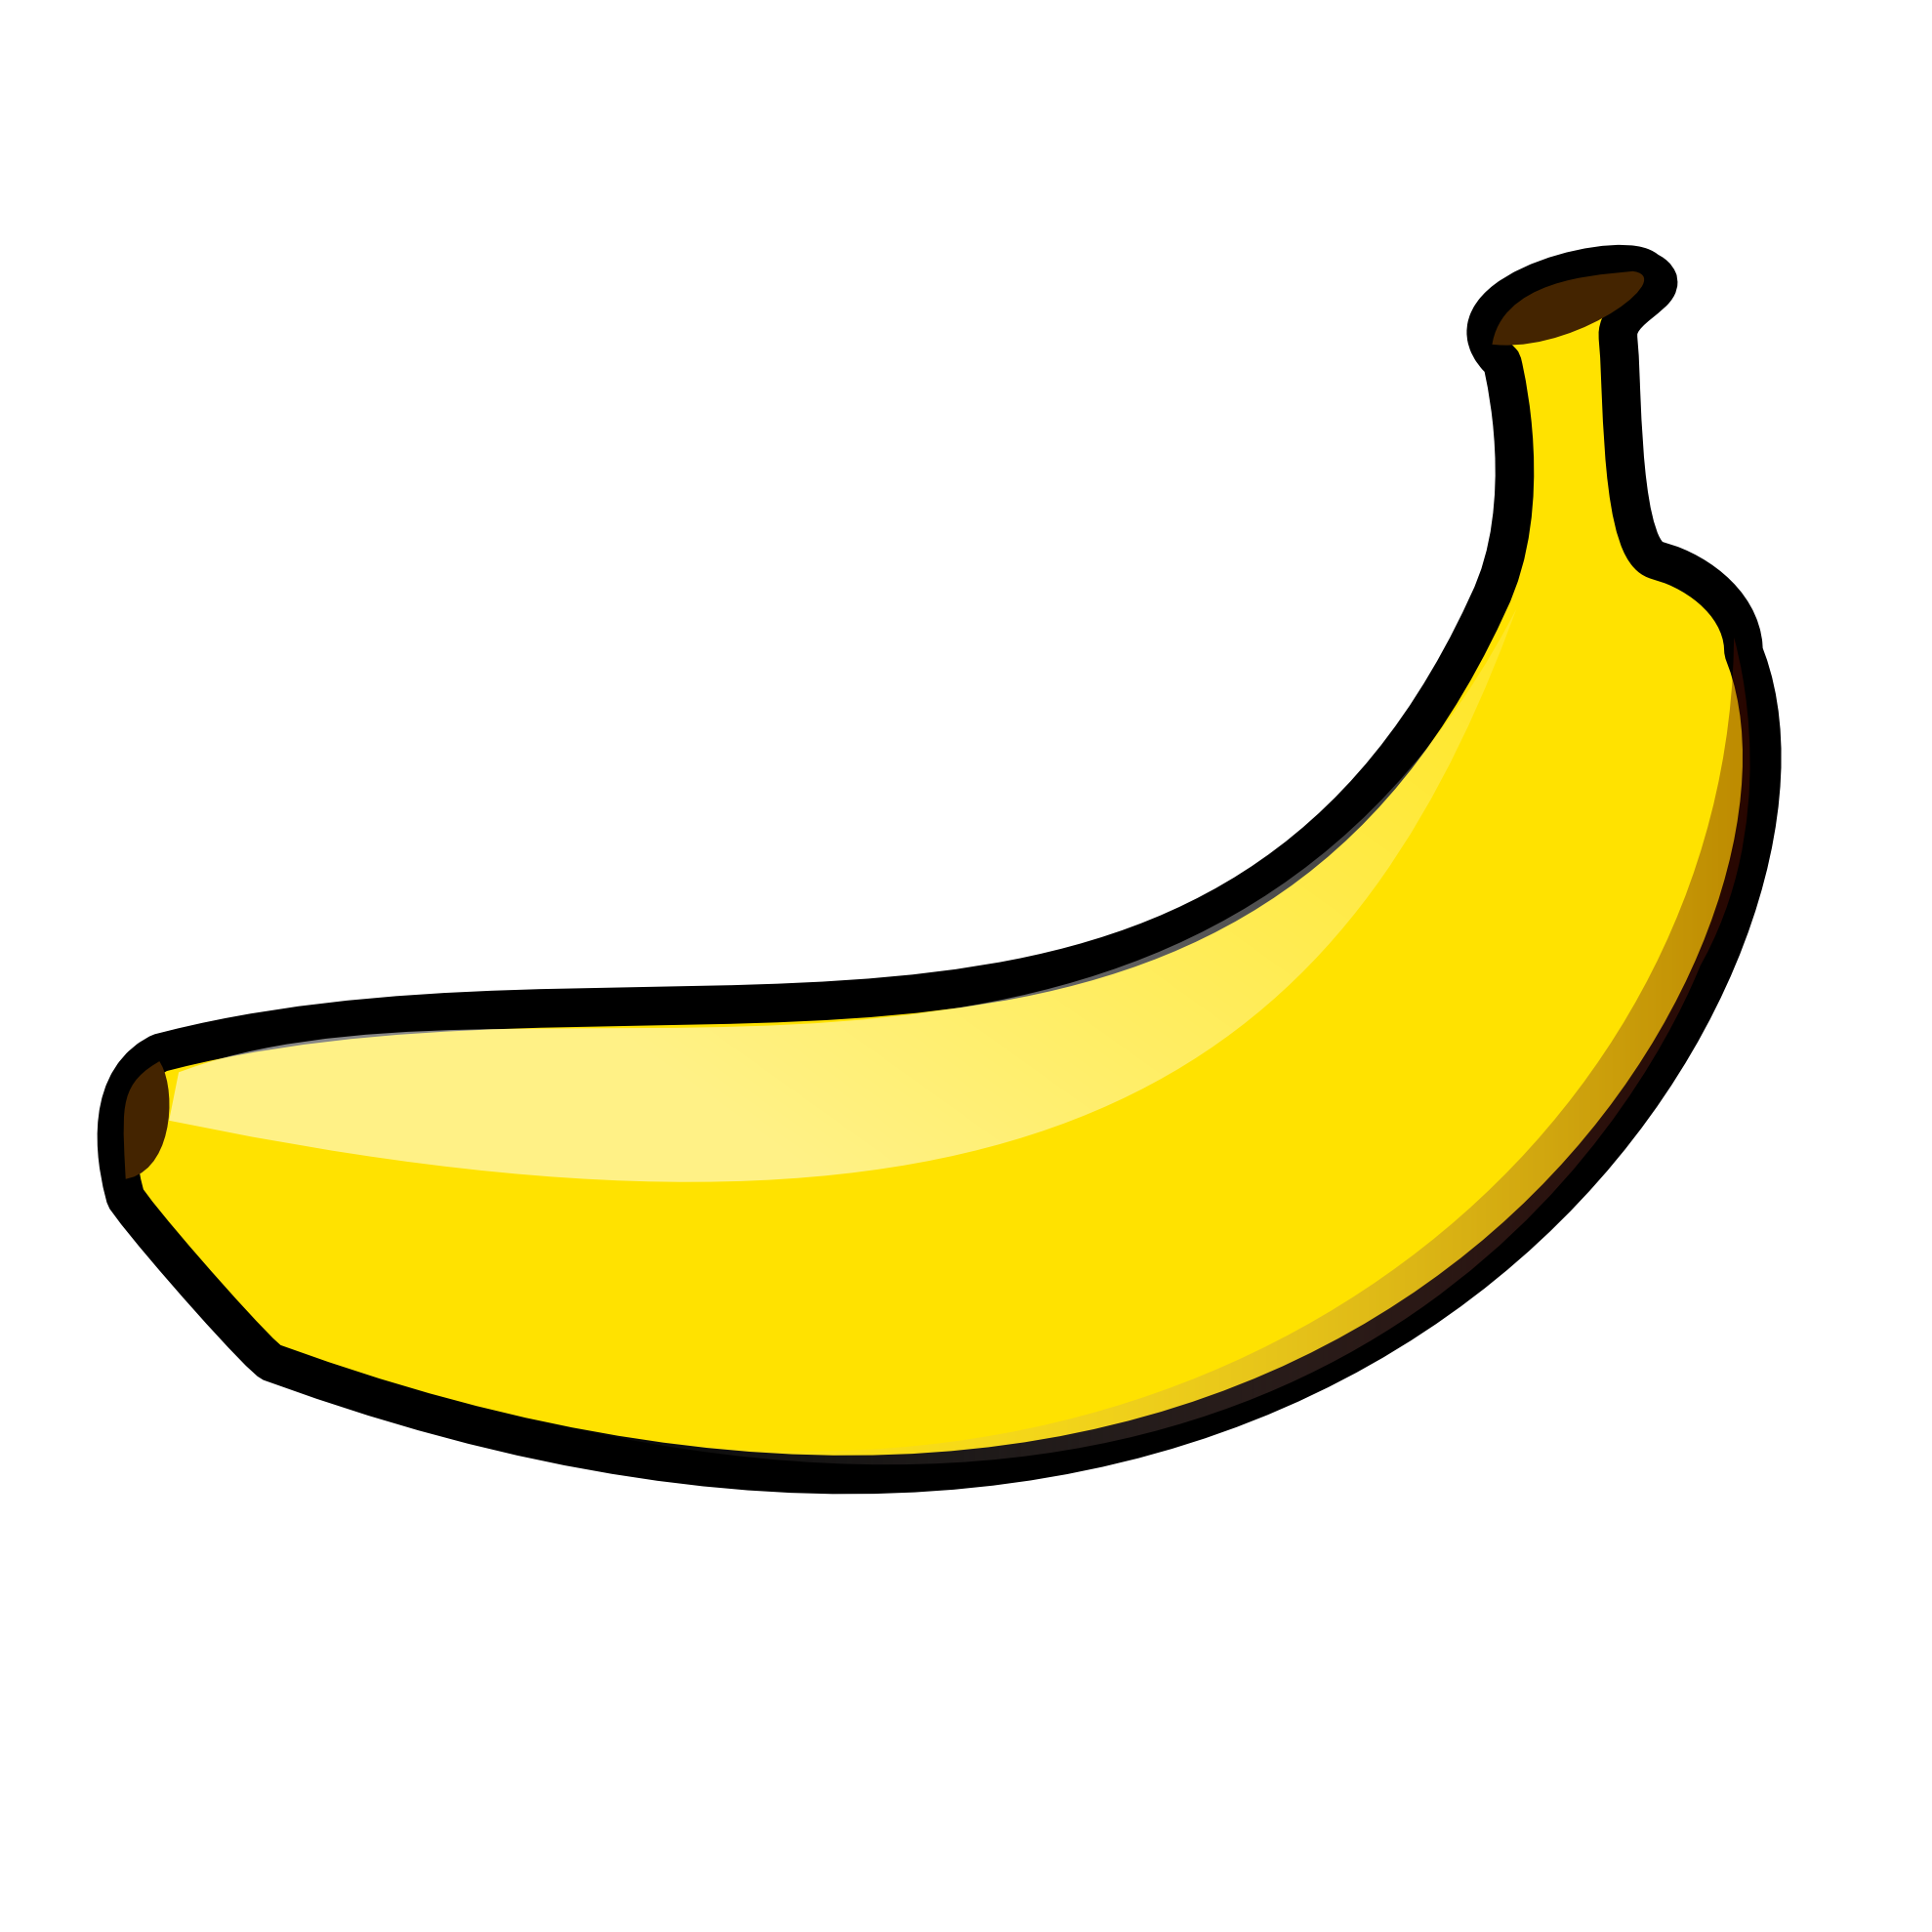 black and white download Banana Transparent PNG Downloads